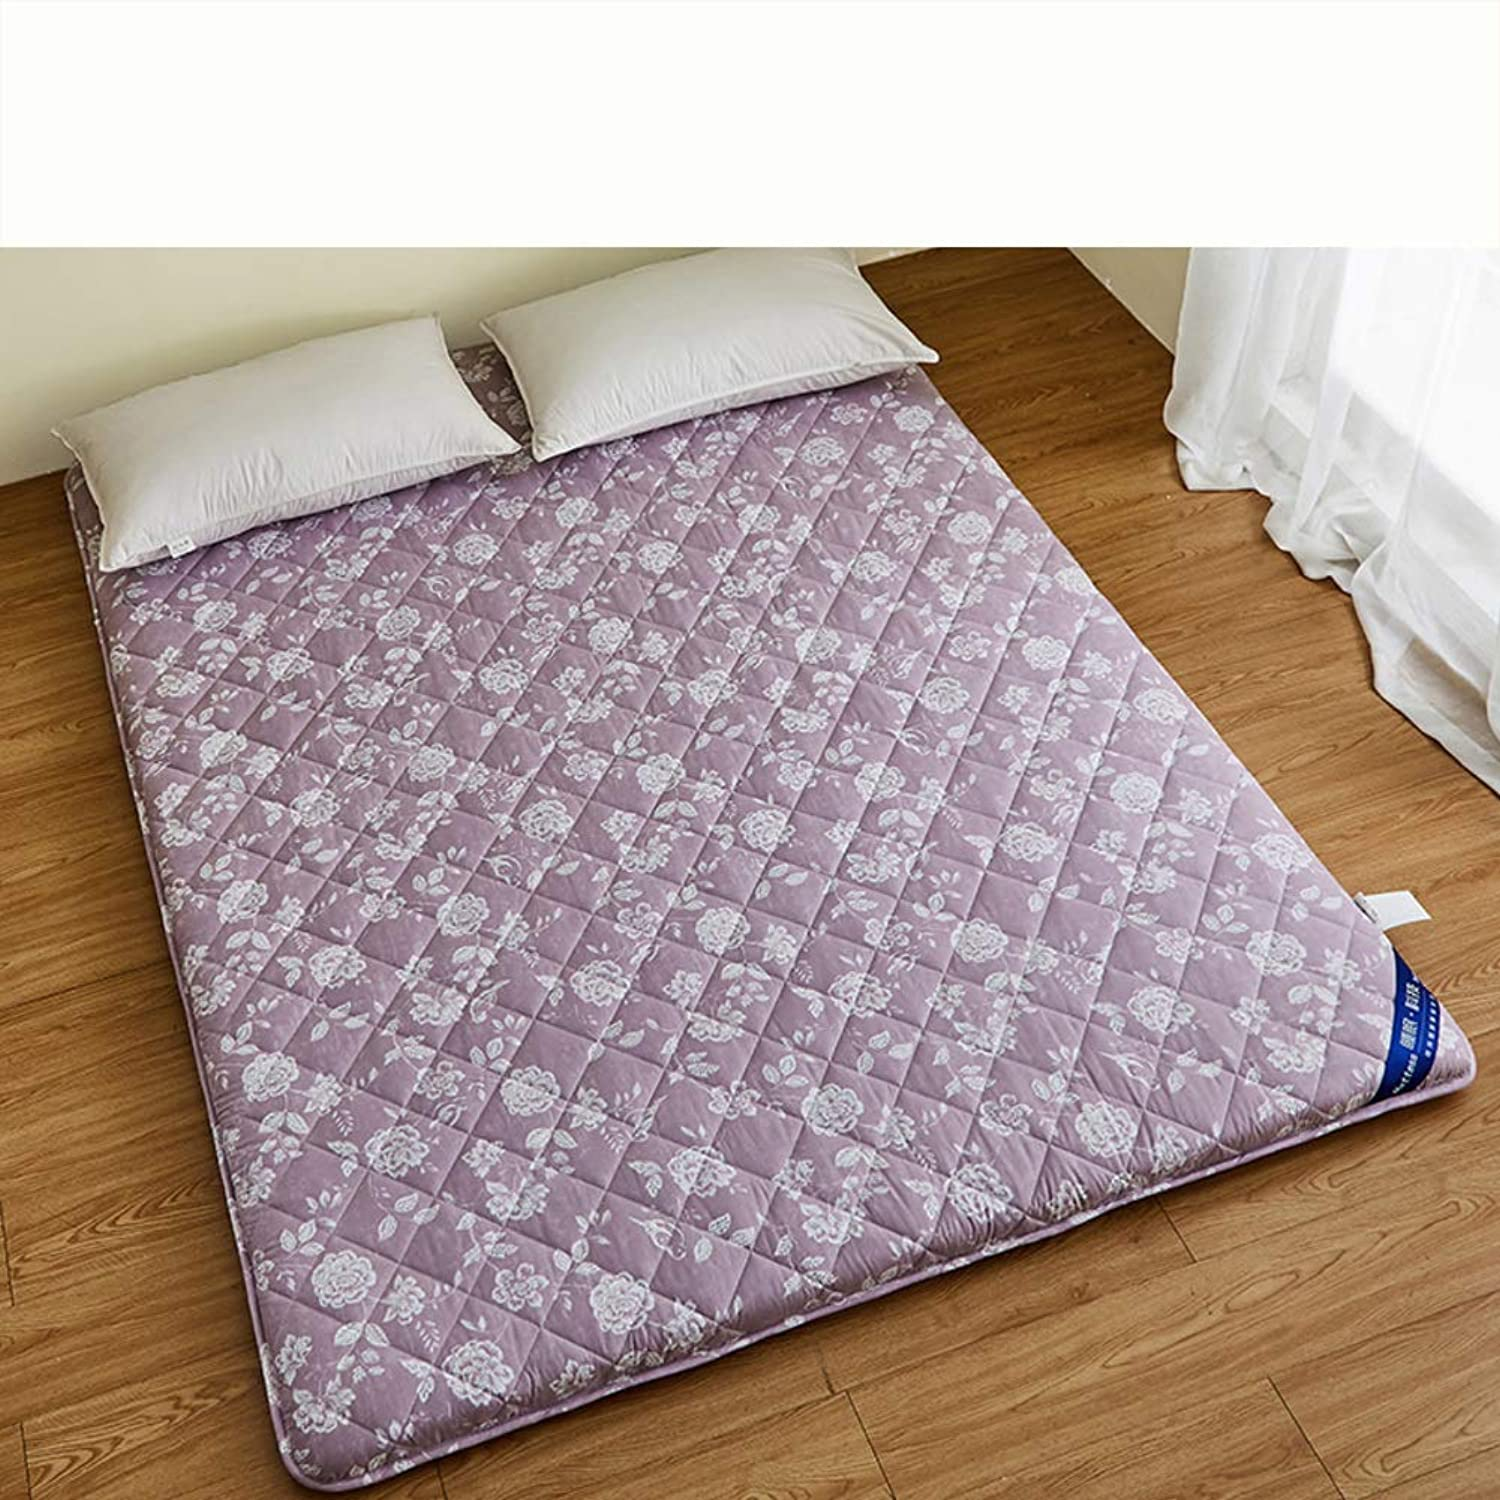 Thick Premium Mattress pad, Japanese Futon Matt mat Sleeping Quilted Fitted Mattress Topper Pad for Student Dormitory Home-B 90x190cm(35x75inch)